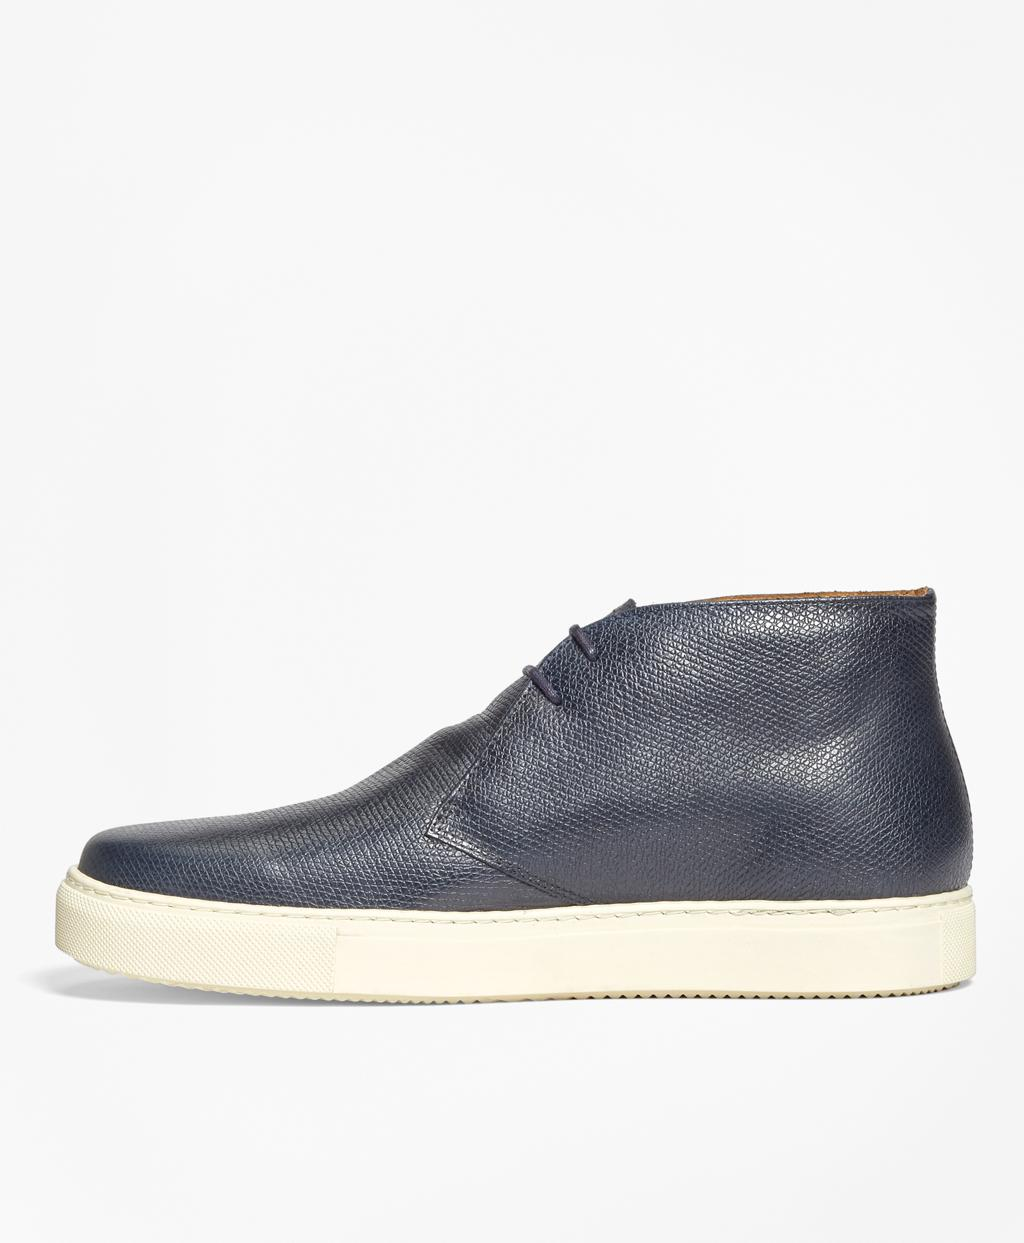 76b944b00fc Lyst - Brooks Brothers 1818 Footwear Textured Leather Chukka Sneakers in  Blue for Men